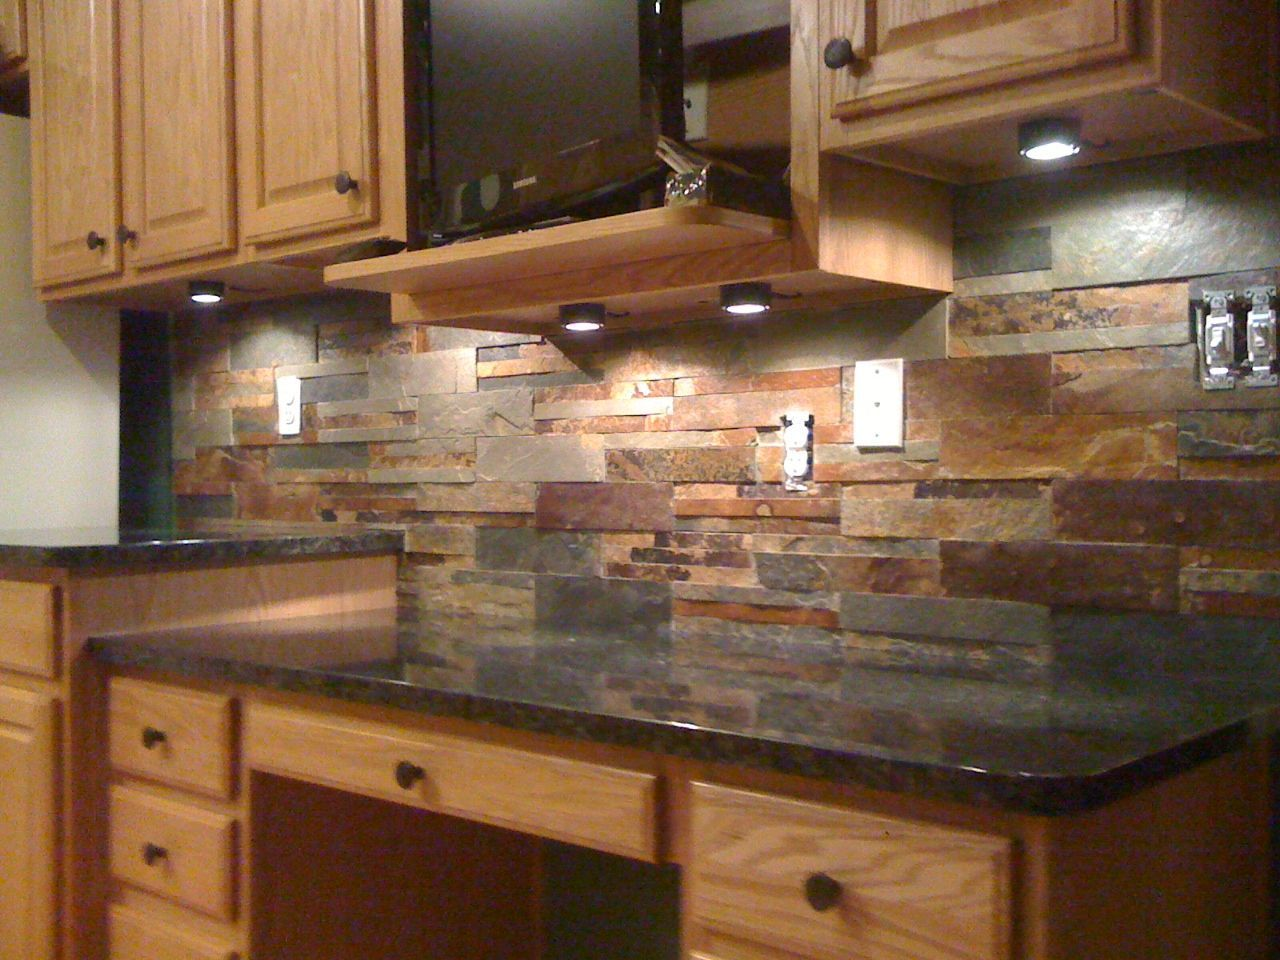 Uncategorized Natural Stone Kitchen Backsplash best 25 slate backsplash ideas on pinterest stone rock and country kitchen